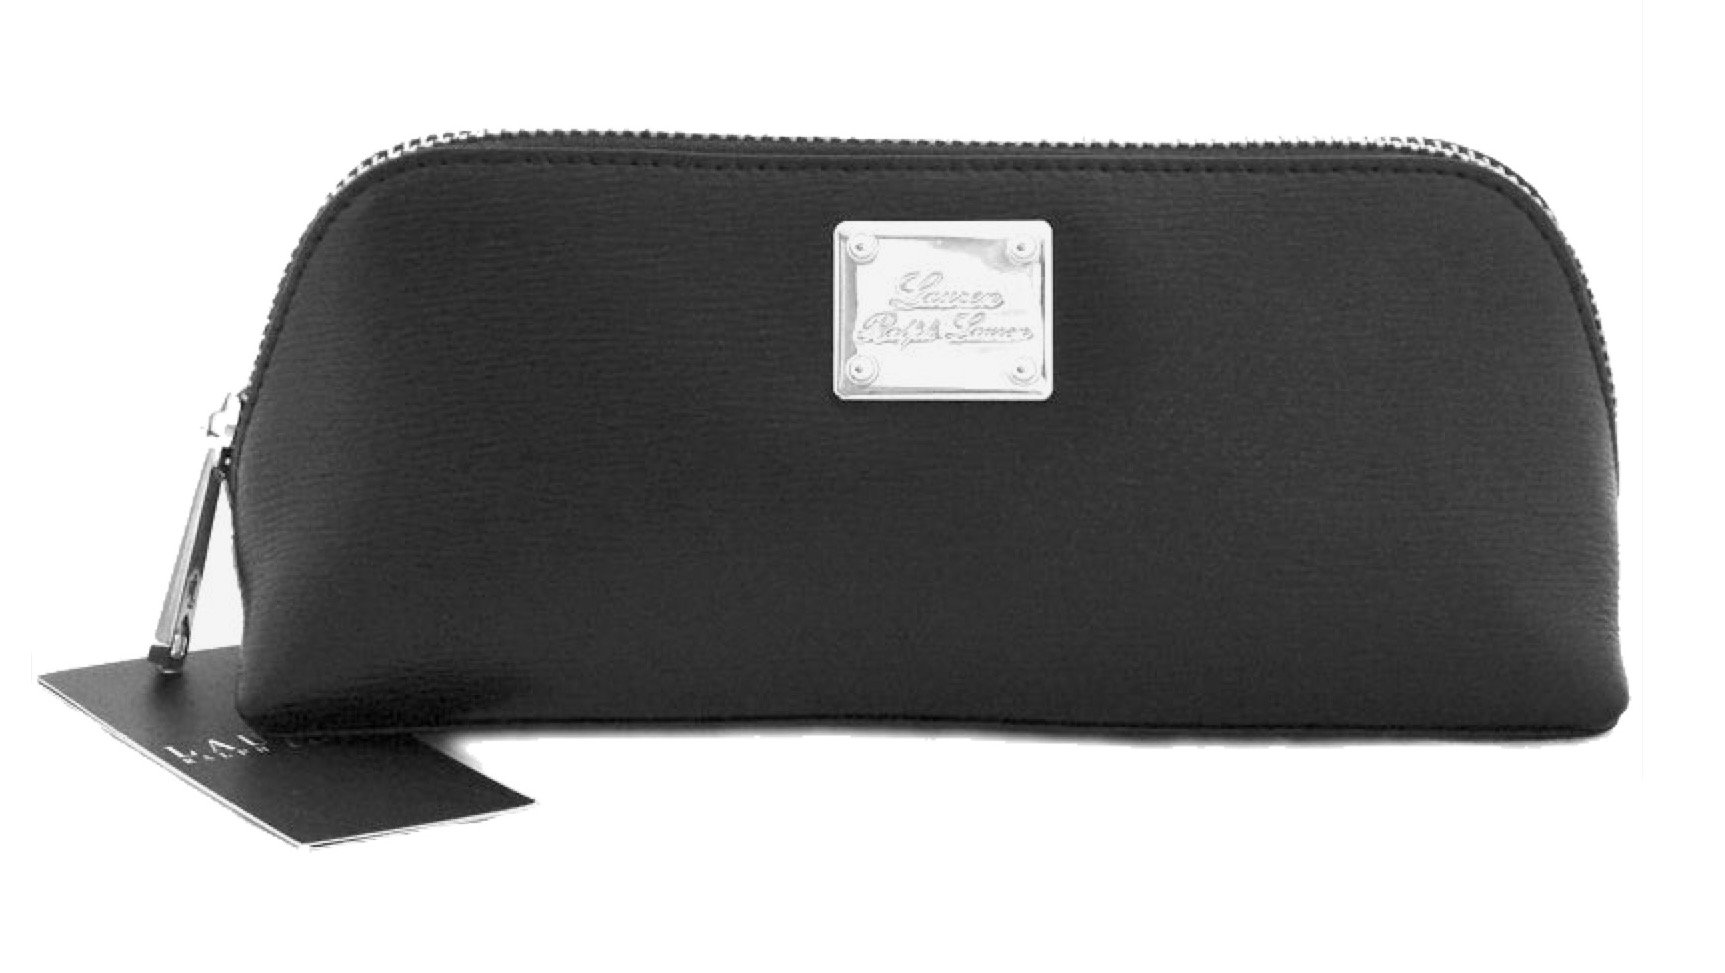 Lauren Ralph Lauren SLOAN STREET Small Triangle Leather Cosmetic Case Black by LAUREN RALPH LAUREN